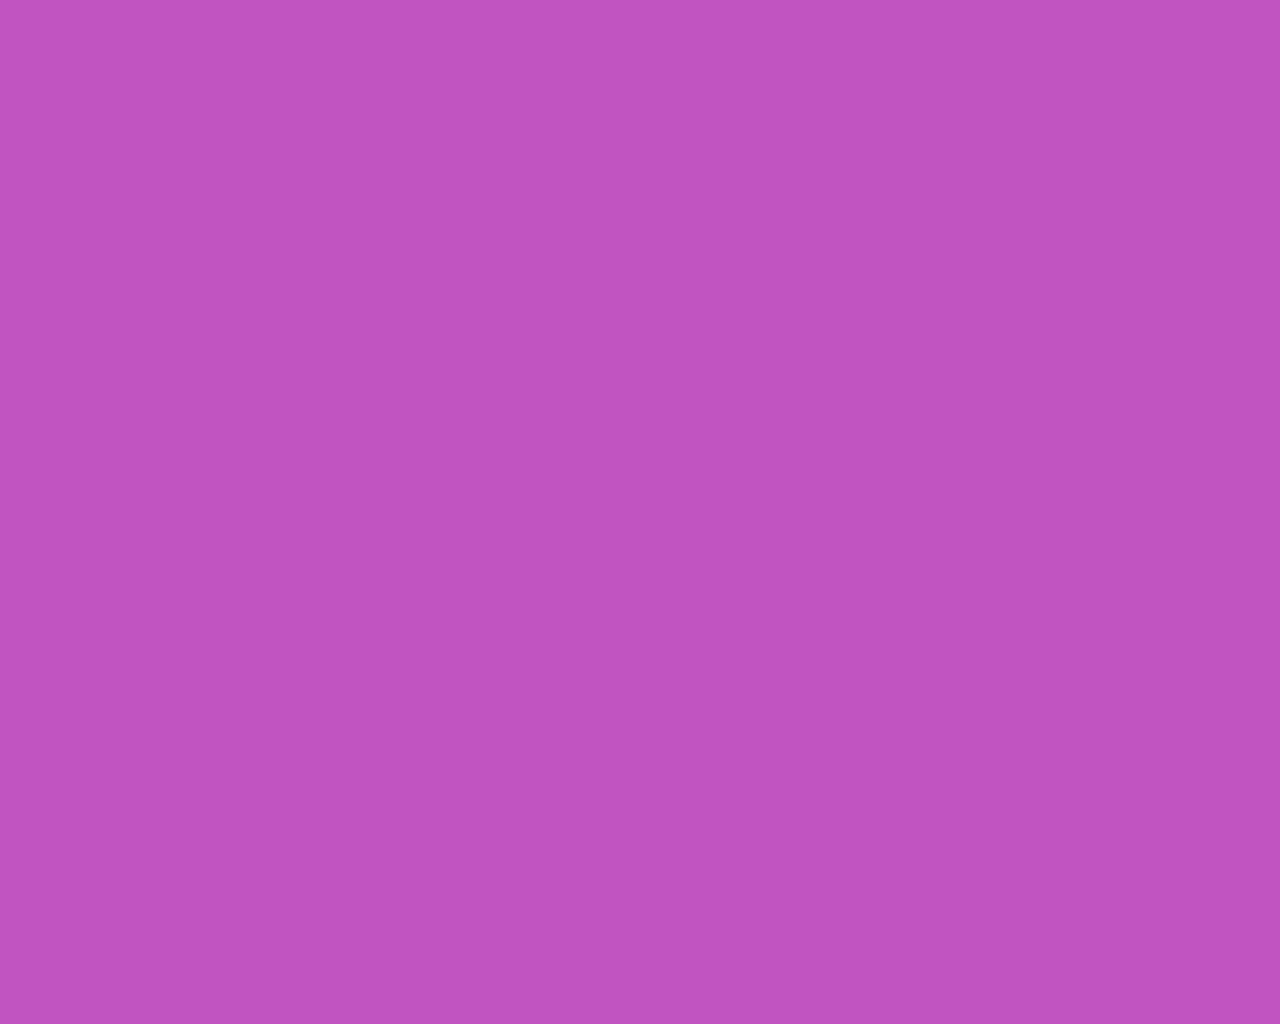 1280x1024 Deep Fuchsia Solid Color Background